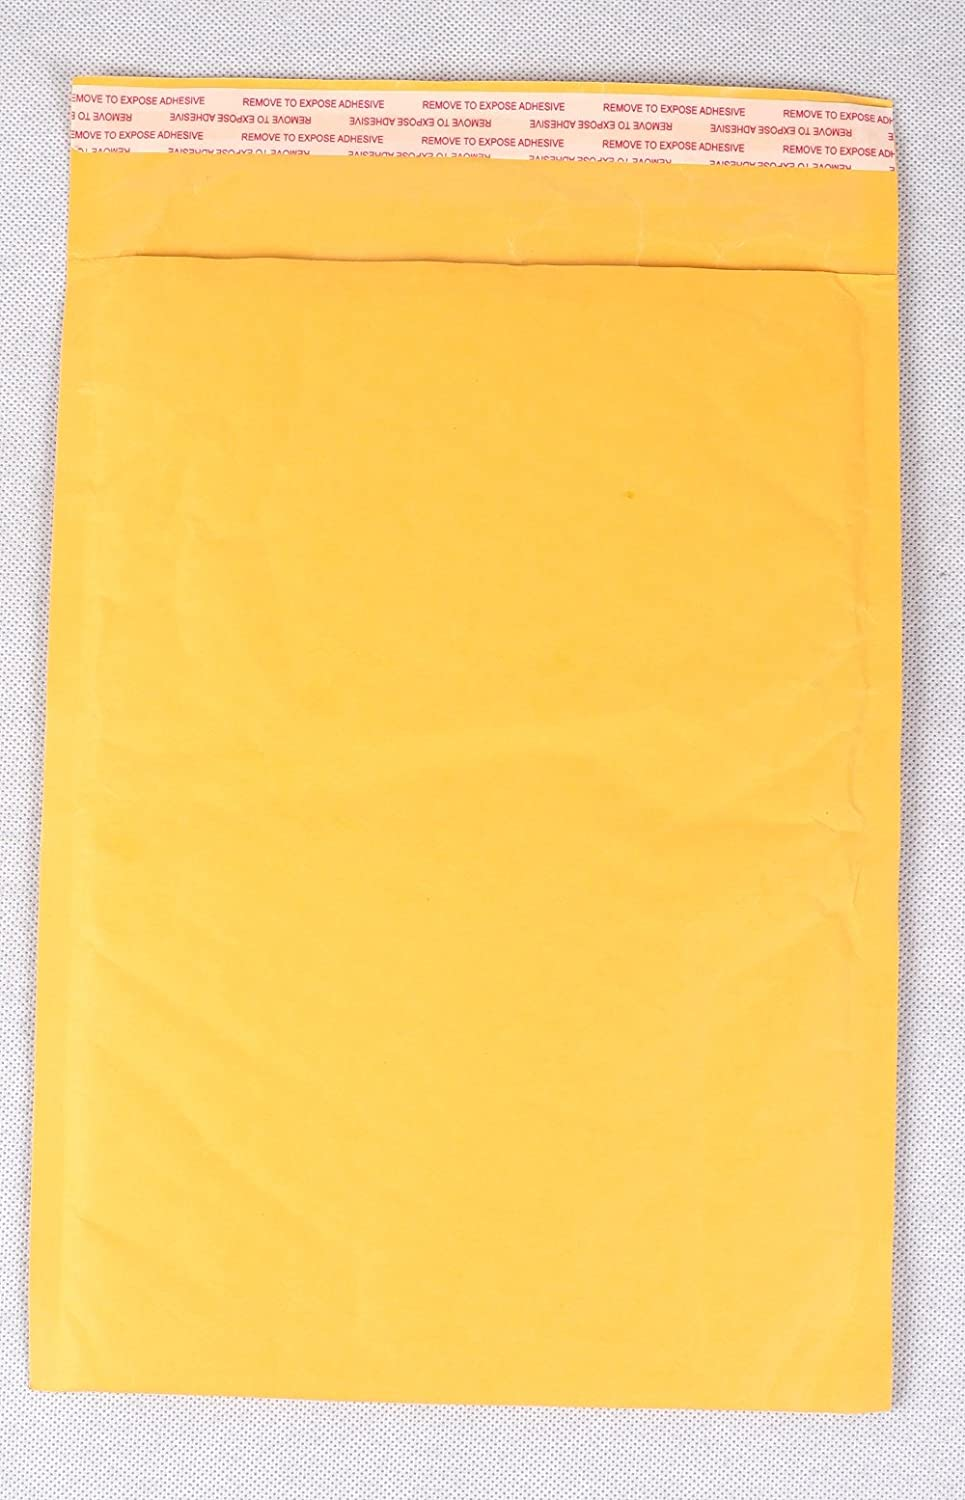 50 Padded Envelopes 6' x 9' (153mm x 229mm) Peel + Seal Gold Bubble Mailer Postal Bags Self Seal Bubble Envelope Prinktoner